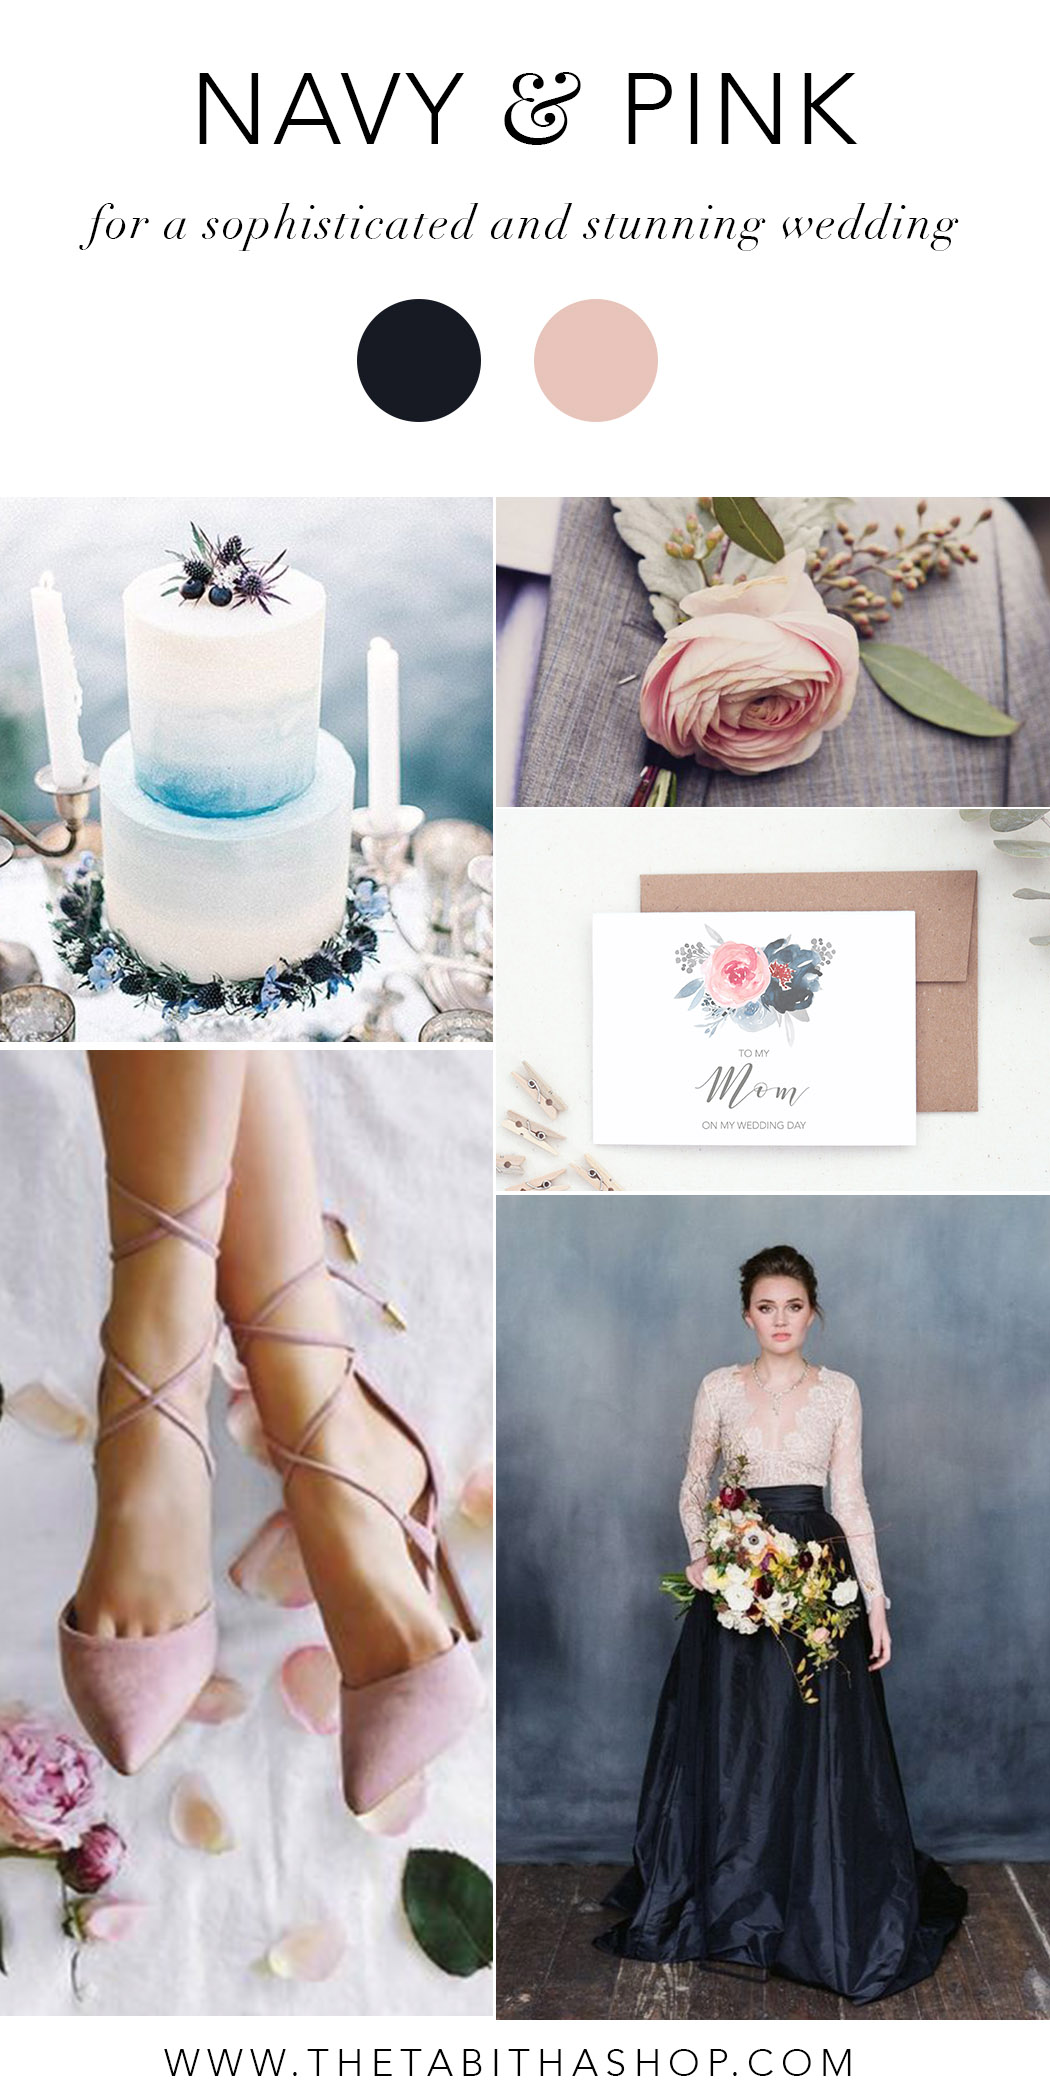 Clockwise, starting top left: via  Brides  // photo by Khaki Bedford via  Style Me Pretty  // To My Mom Card by  The Tabitha Shop  // Heavenly Lace Wedding Dresses via  Aisle Society  // Shoes from  Lulus